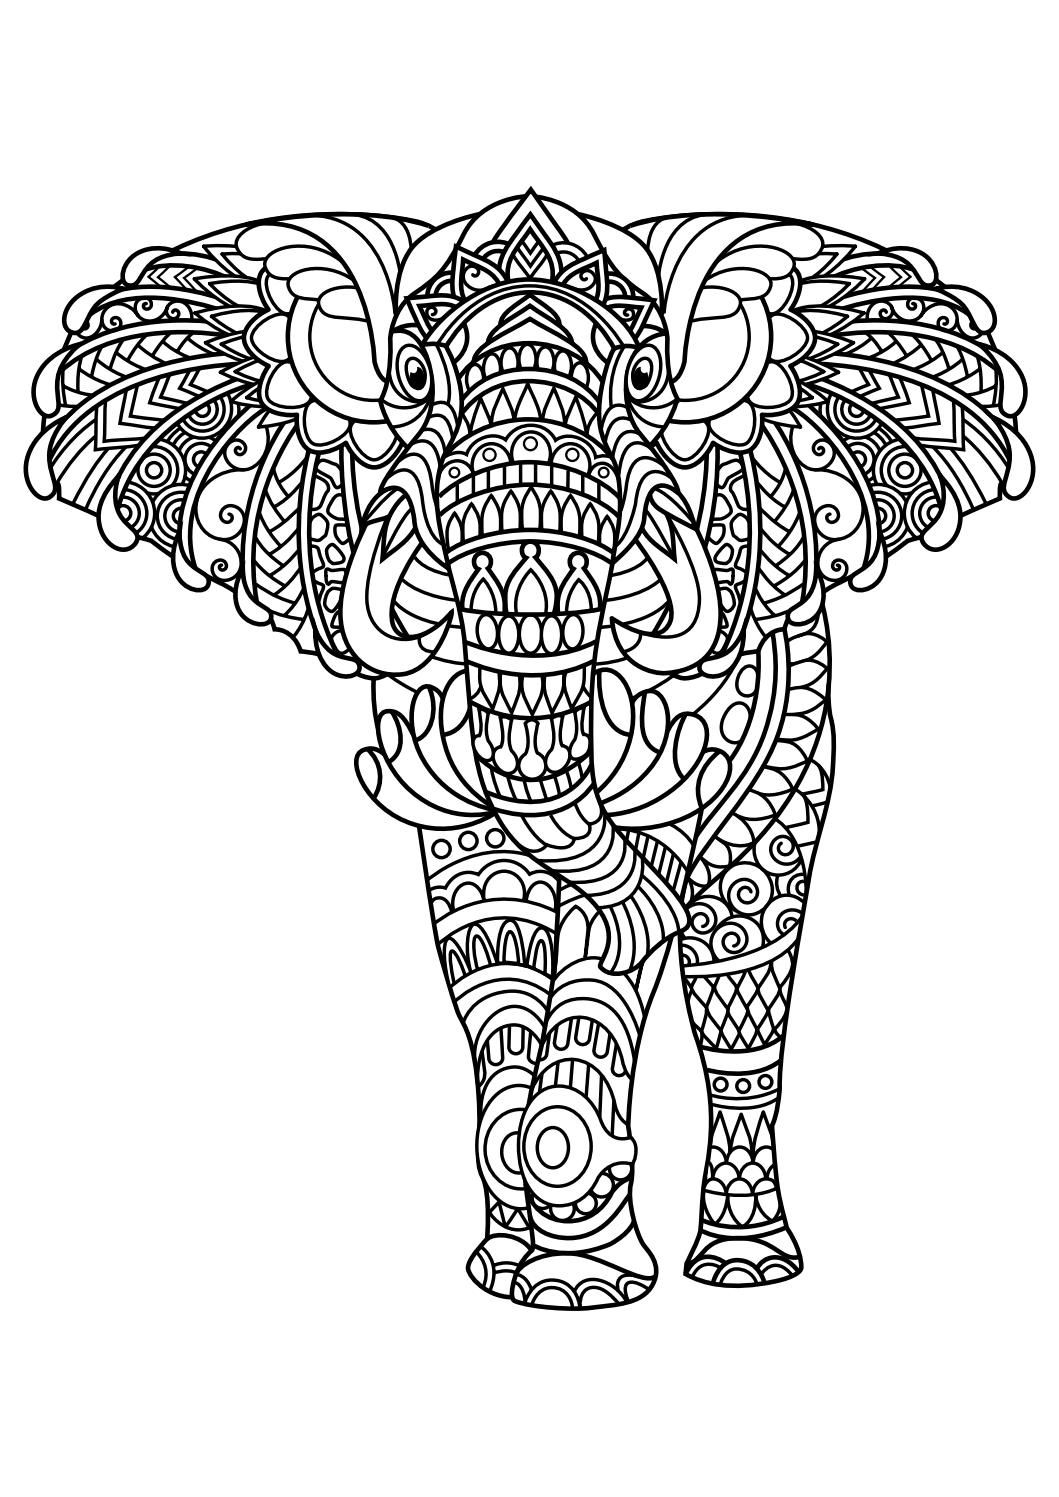 Animal coloring pages pdf (With images) | Elephant ... | coloring pictures for adults animals